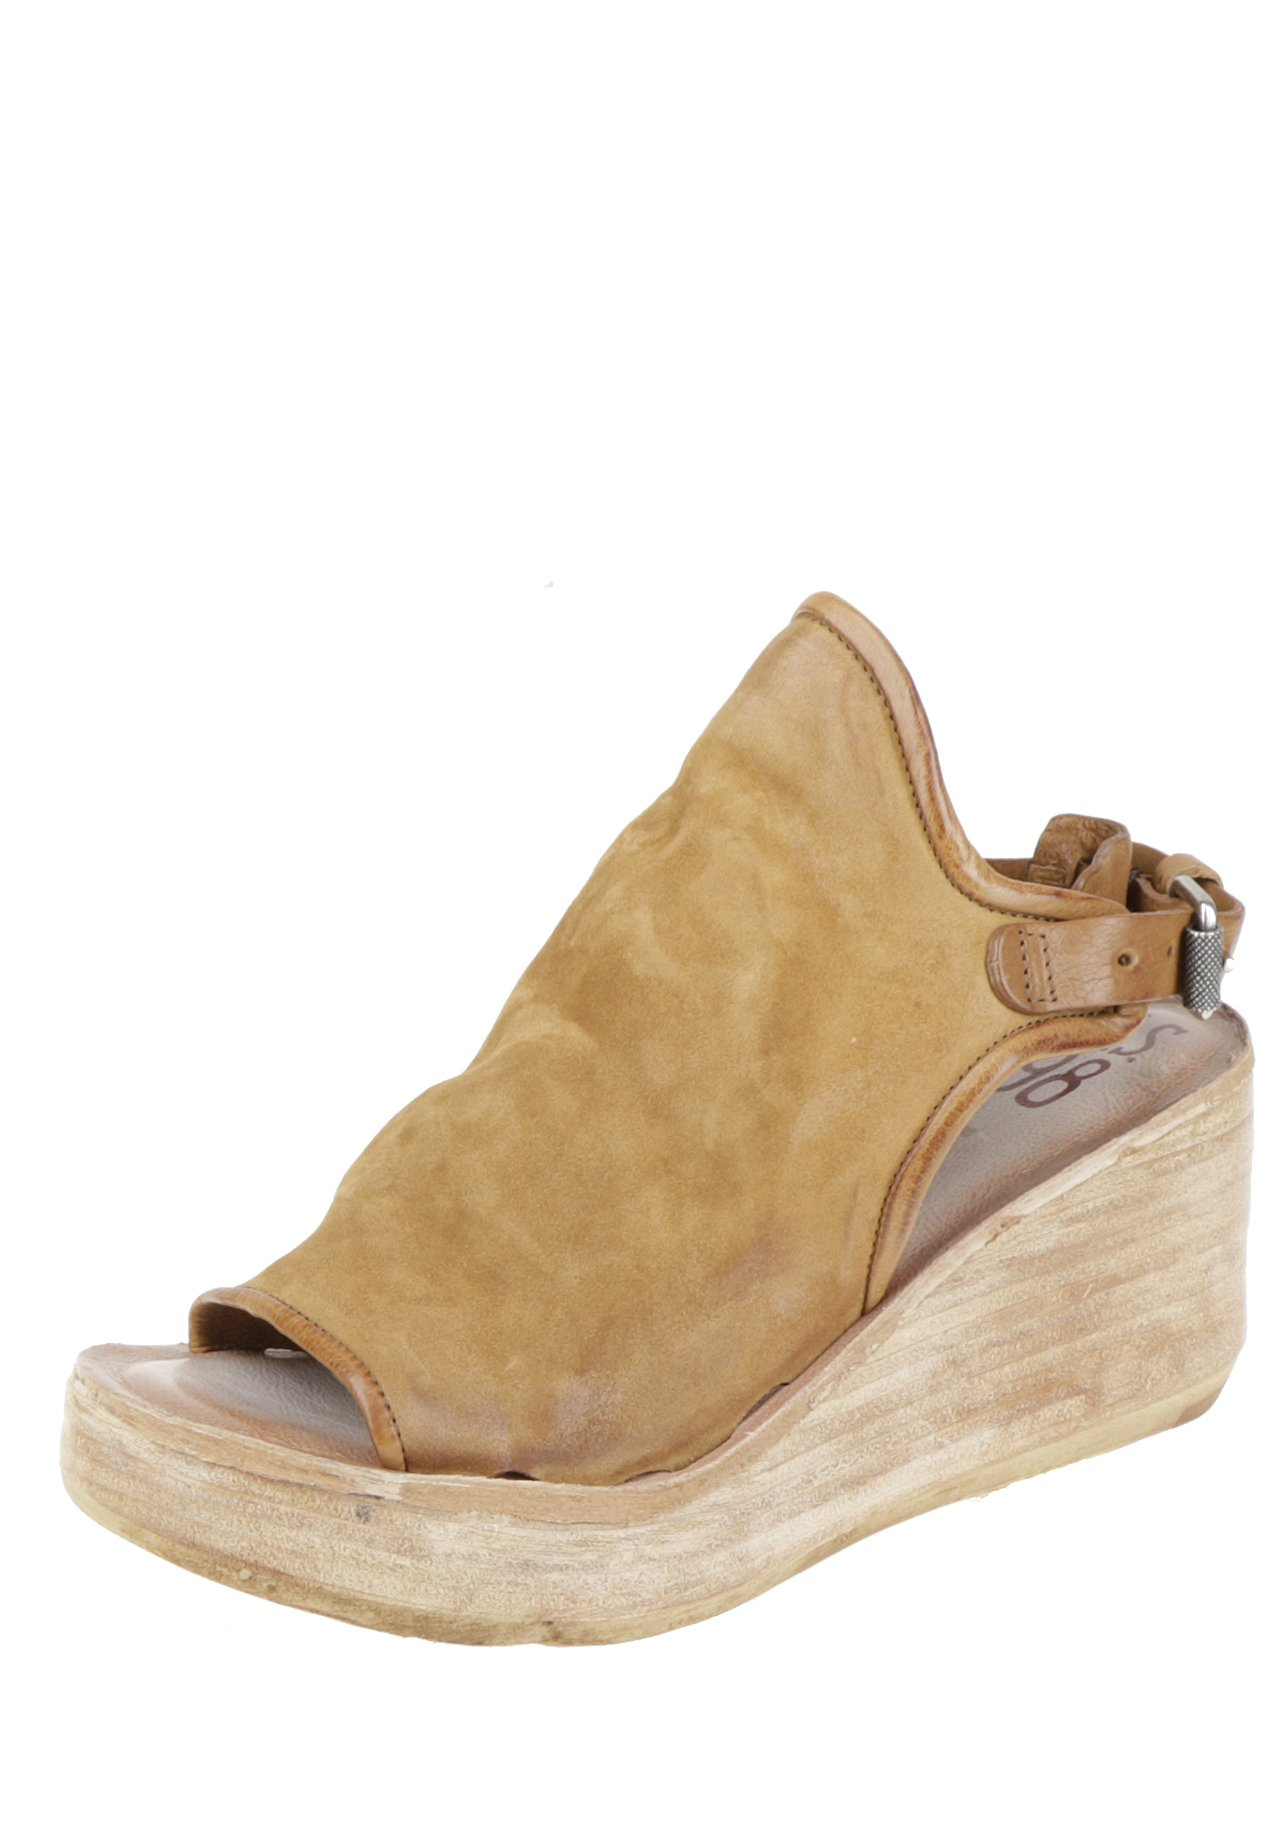 A.S.98 Plateausandalette - brown